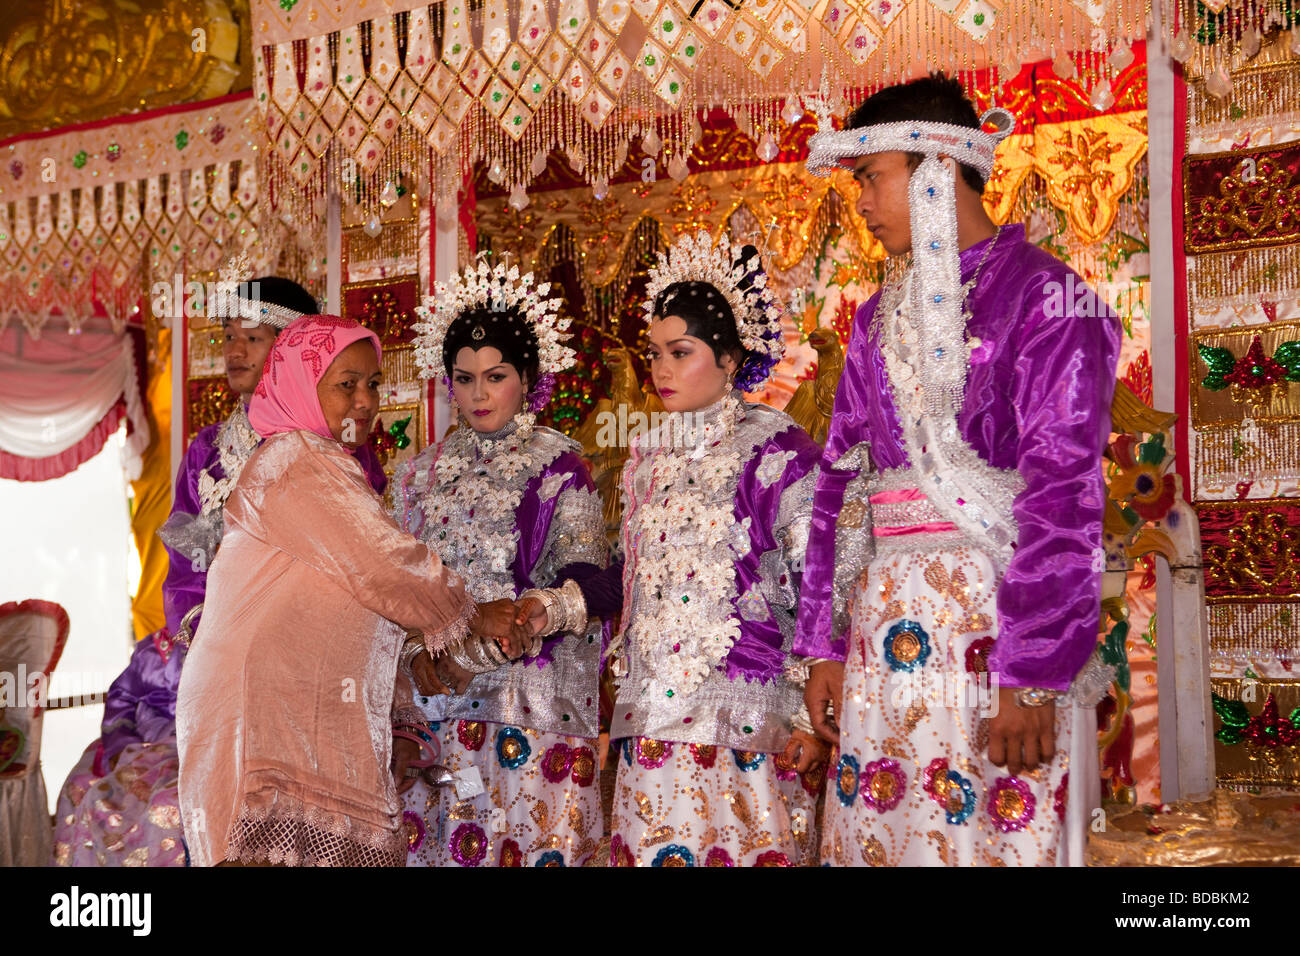 Indonesia Sulawesi Sidereng village wedding guest meeting brides at unusual double muslim marriage celebration - Stock Image